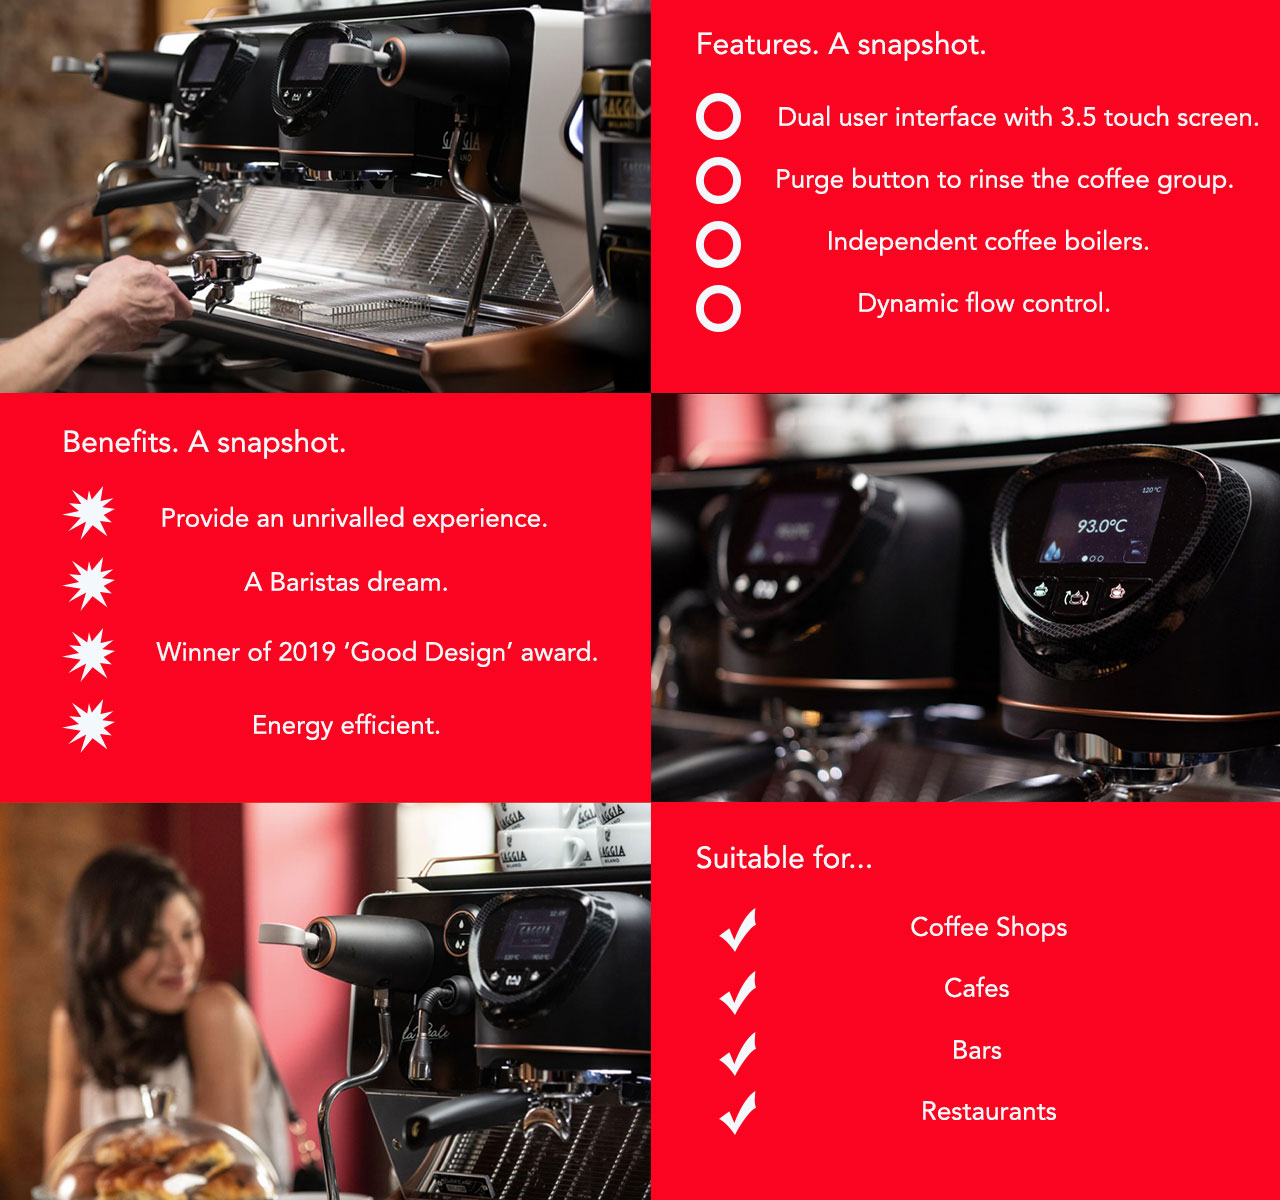 The Gaggia La Reale traditional coffee machine offers everything you need and more for your coffee shop or similar environment.